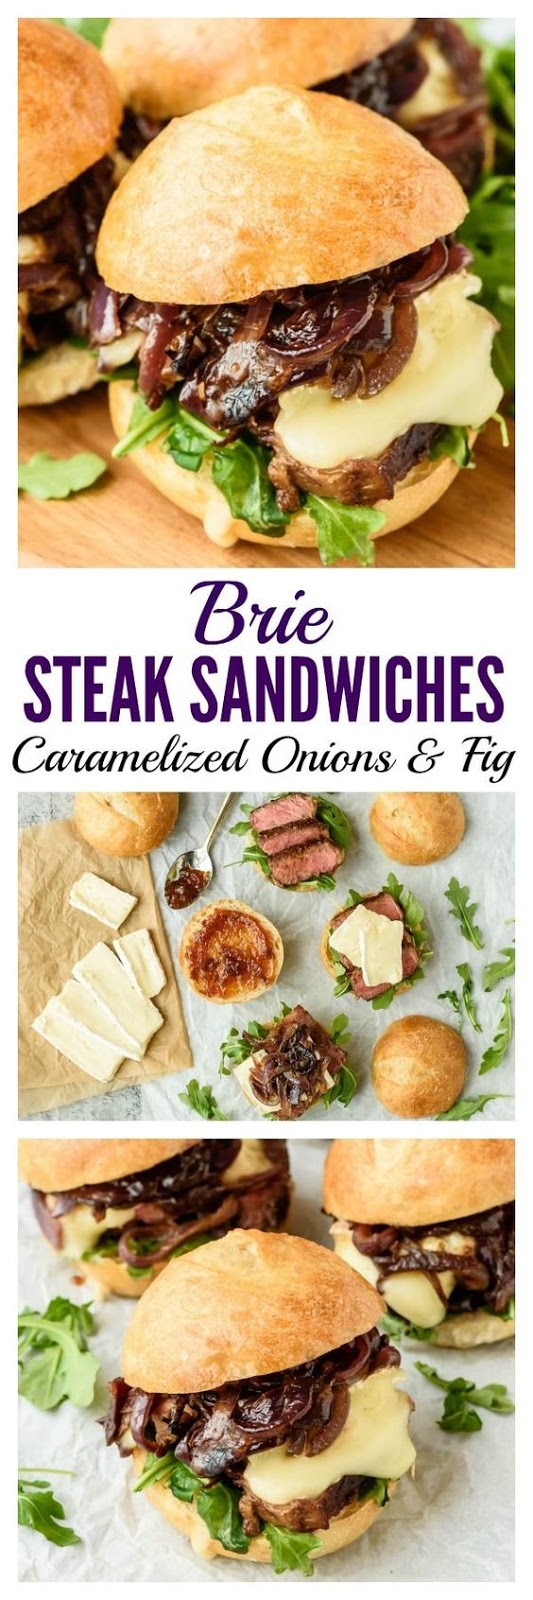 Mini Steak Sandwich with Brie, Caramelized Onions, and Fig Jam